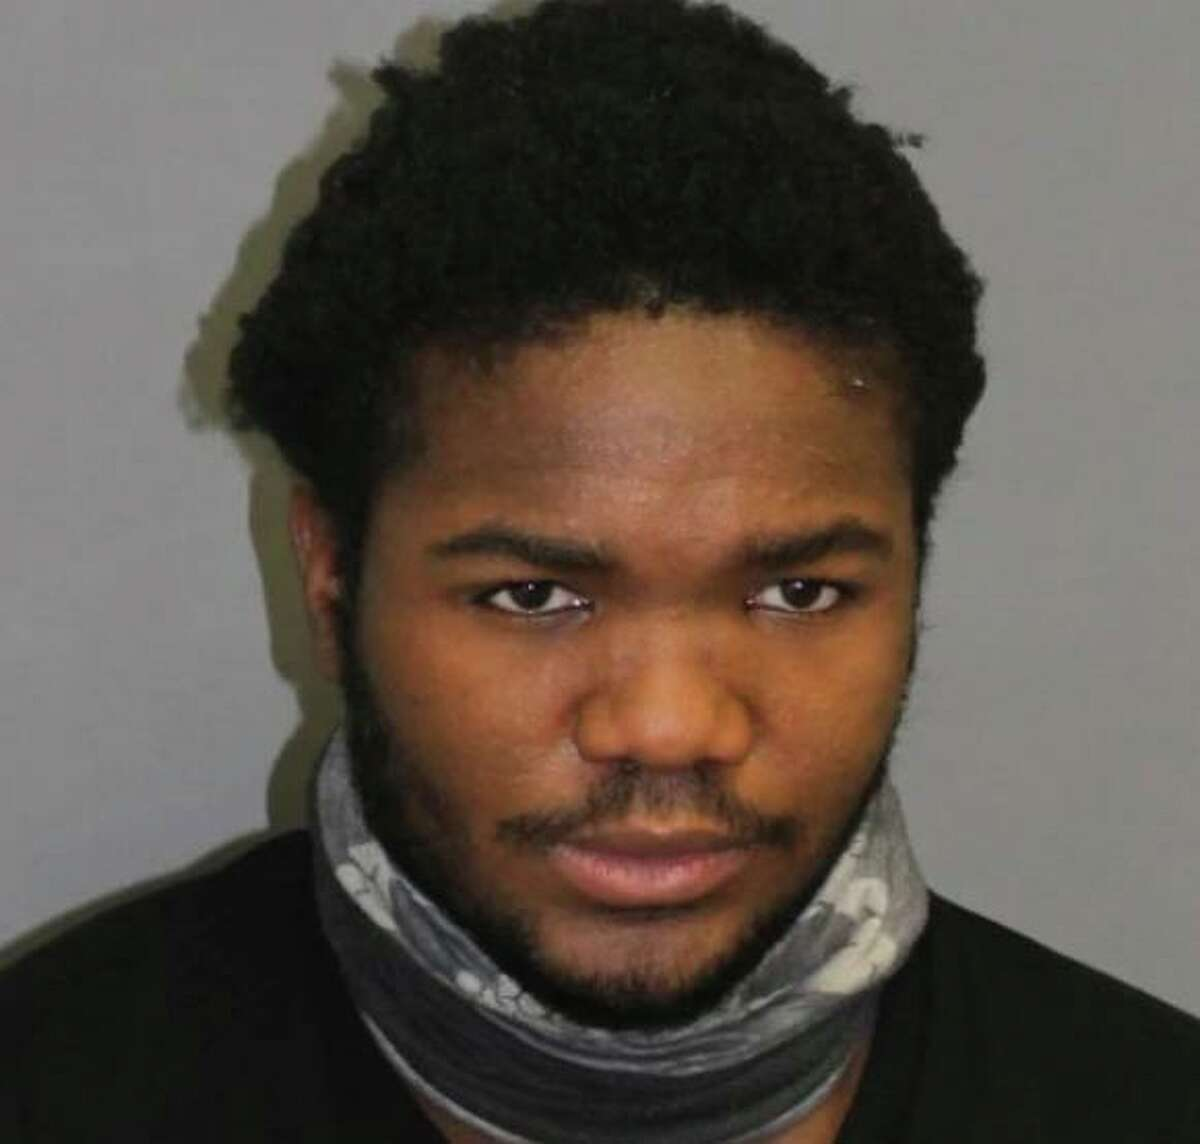 Malik Ivan Price, of Sanford Street in Hartford, Conn., was charged with reckless driving, evading responsibility, operating a motor vehicle without a license, carrying a pistol without a permit, illegal possession of a weapon in a motor vehicle, three counts risk of injury to a minor, conspiracy to commit home invasion, three counts of conspiracy to commit third-degree burglary, first-degree larceny, two counts of conspiracy to commit first-degree larceny, interfering with an officer/resisting, assault on a public safety officer, criminal use of a weapon, first-degree assault, second-degree assault, first-degree threatening and four counts of first-degree reckless endangerment.